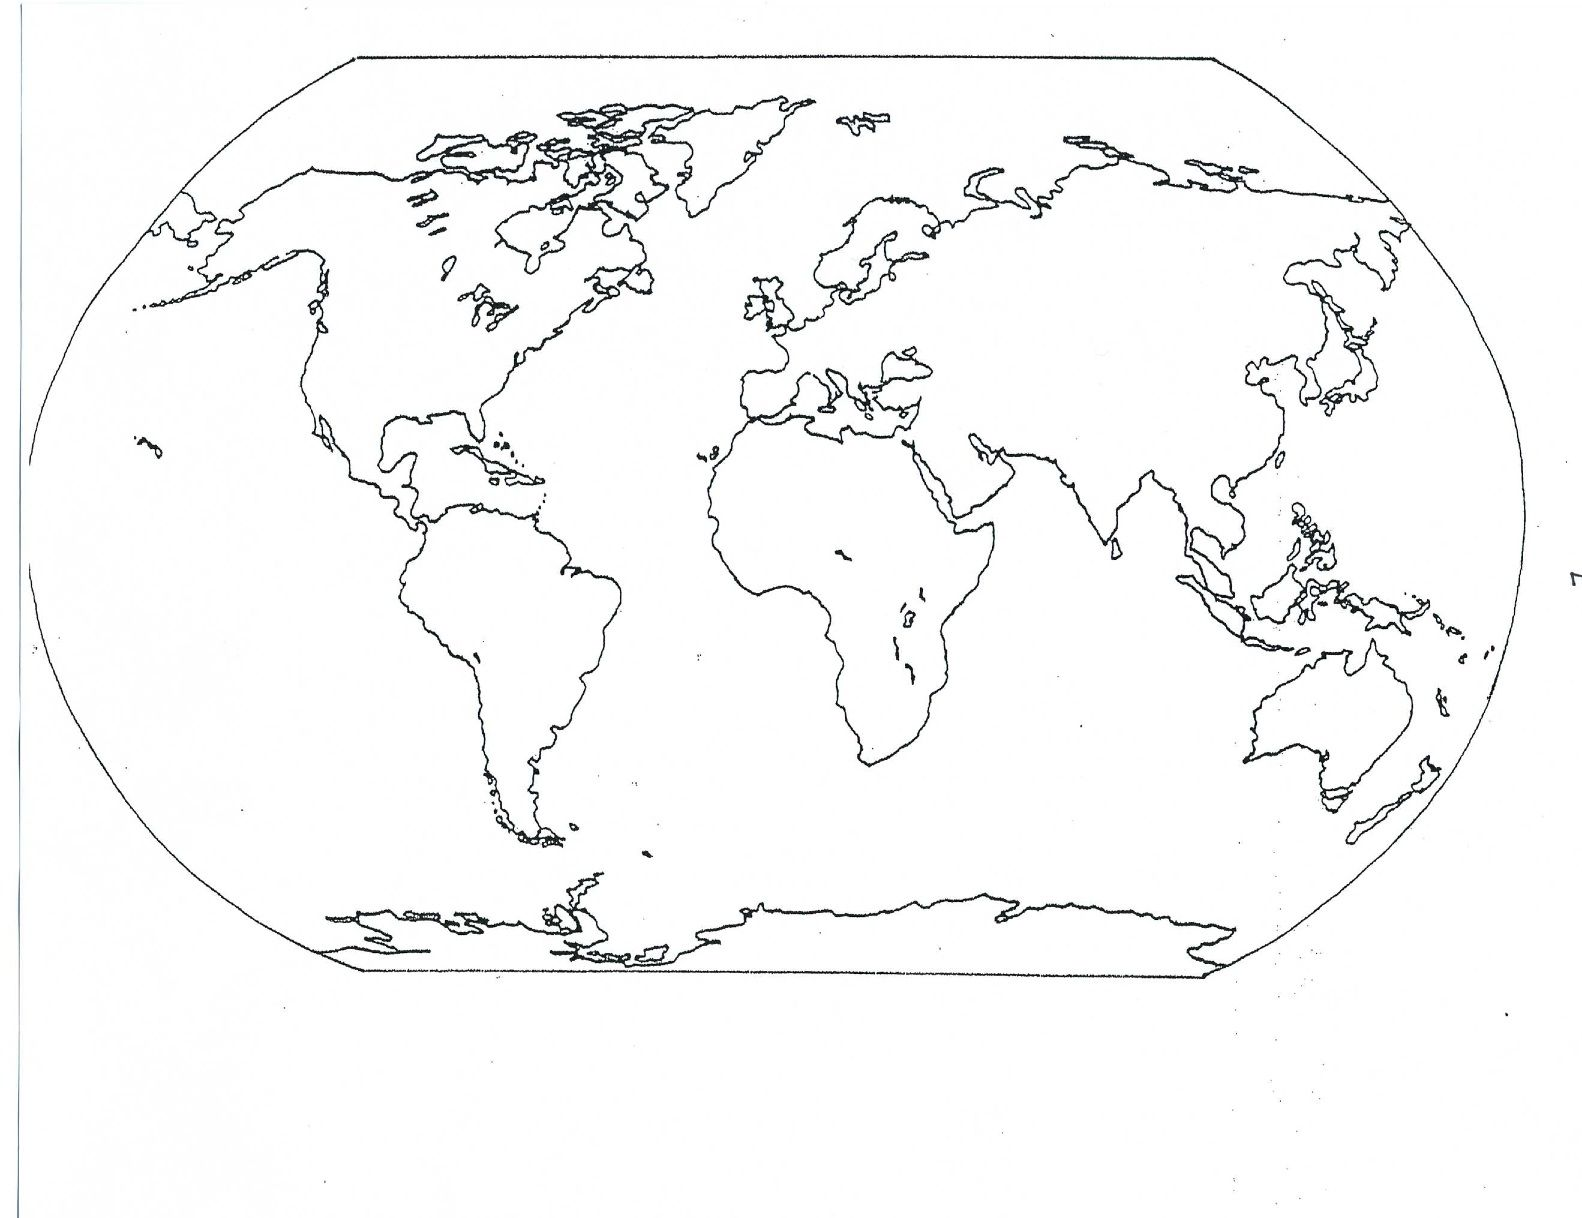 Map Of Canada Unlabelled.Blank Seven Continents Map Mr Guerrieros Blog Blank And Filled In